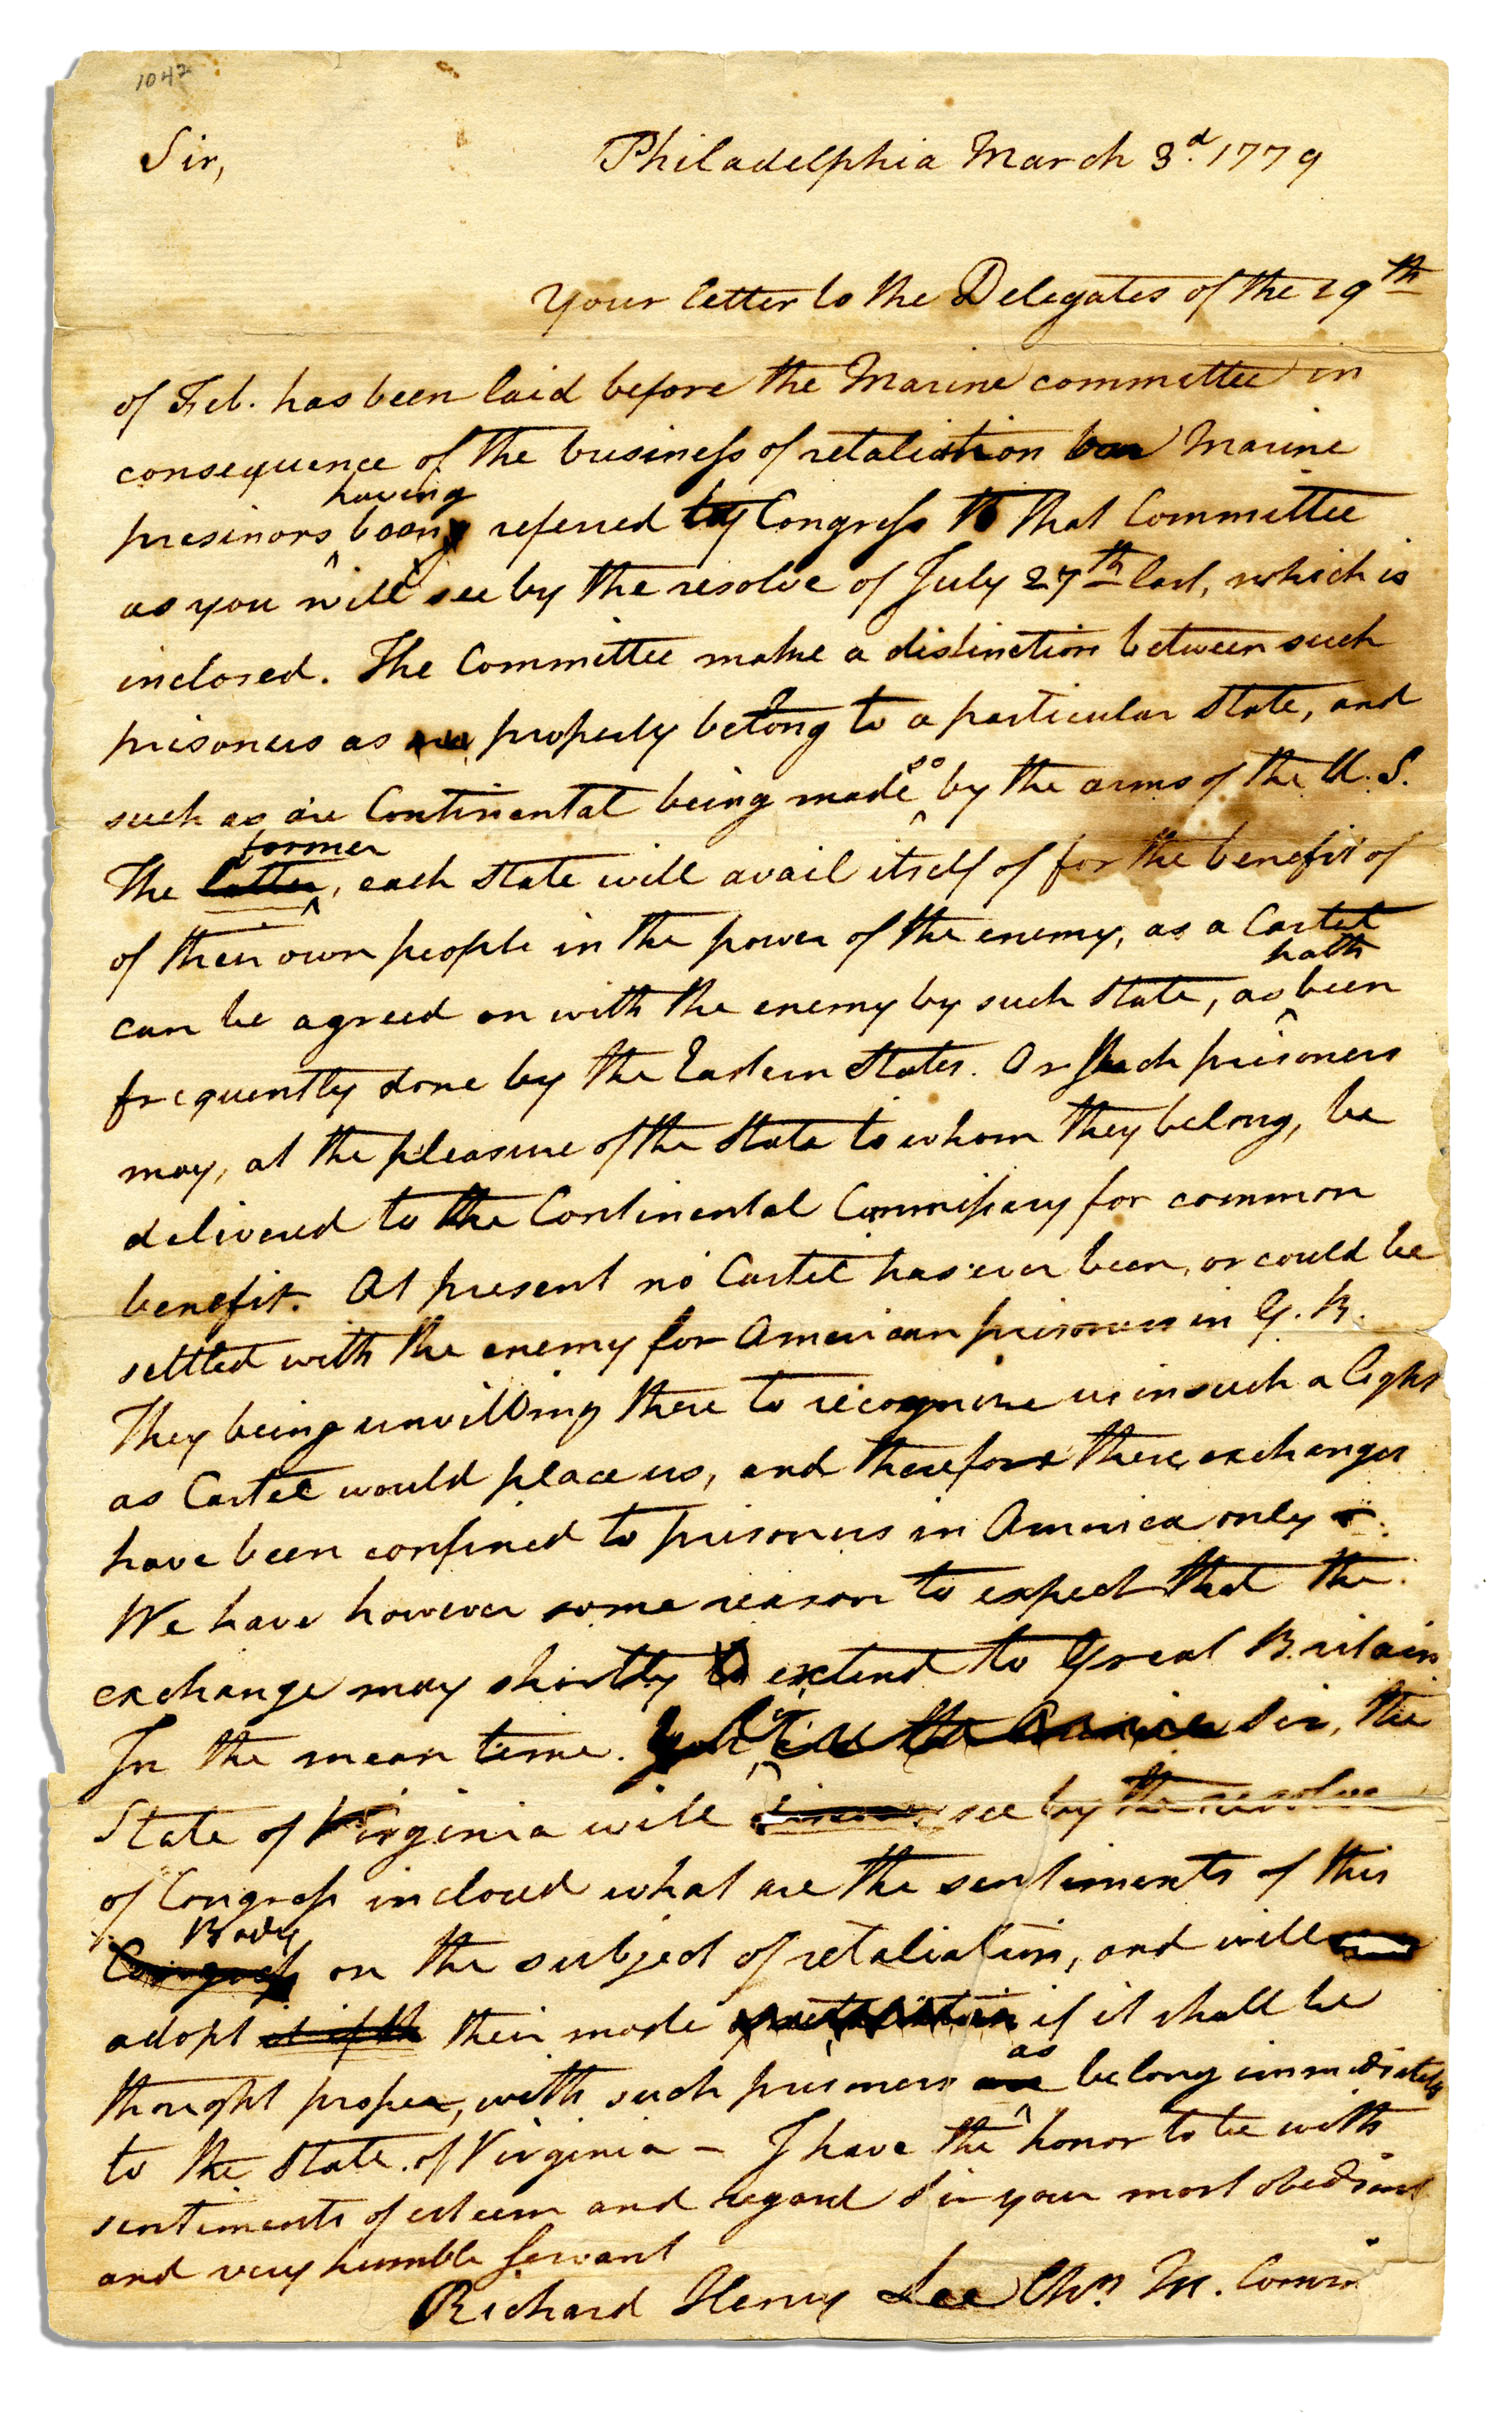 revolutionary war creative writing letter There isn't a doubt that oliver reed was just like any other soldier who had gone away to fight in the american revolution, writing home to his wife and.